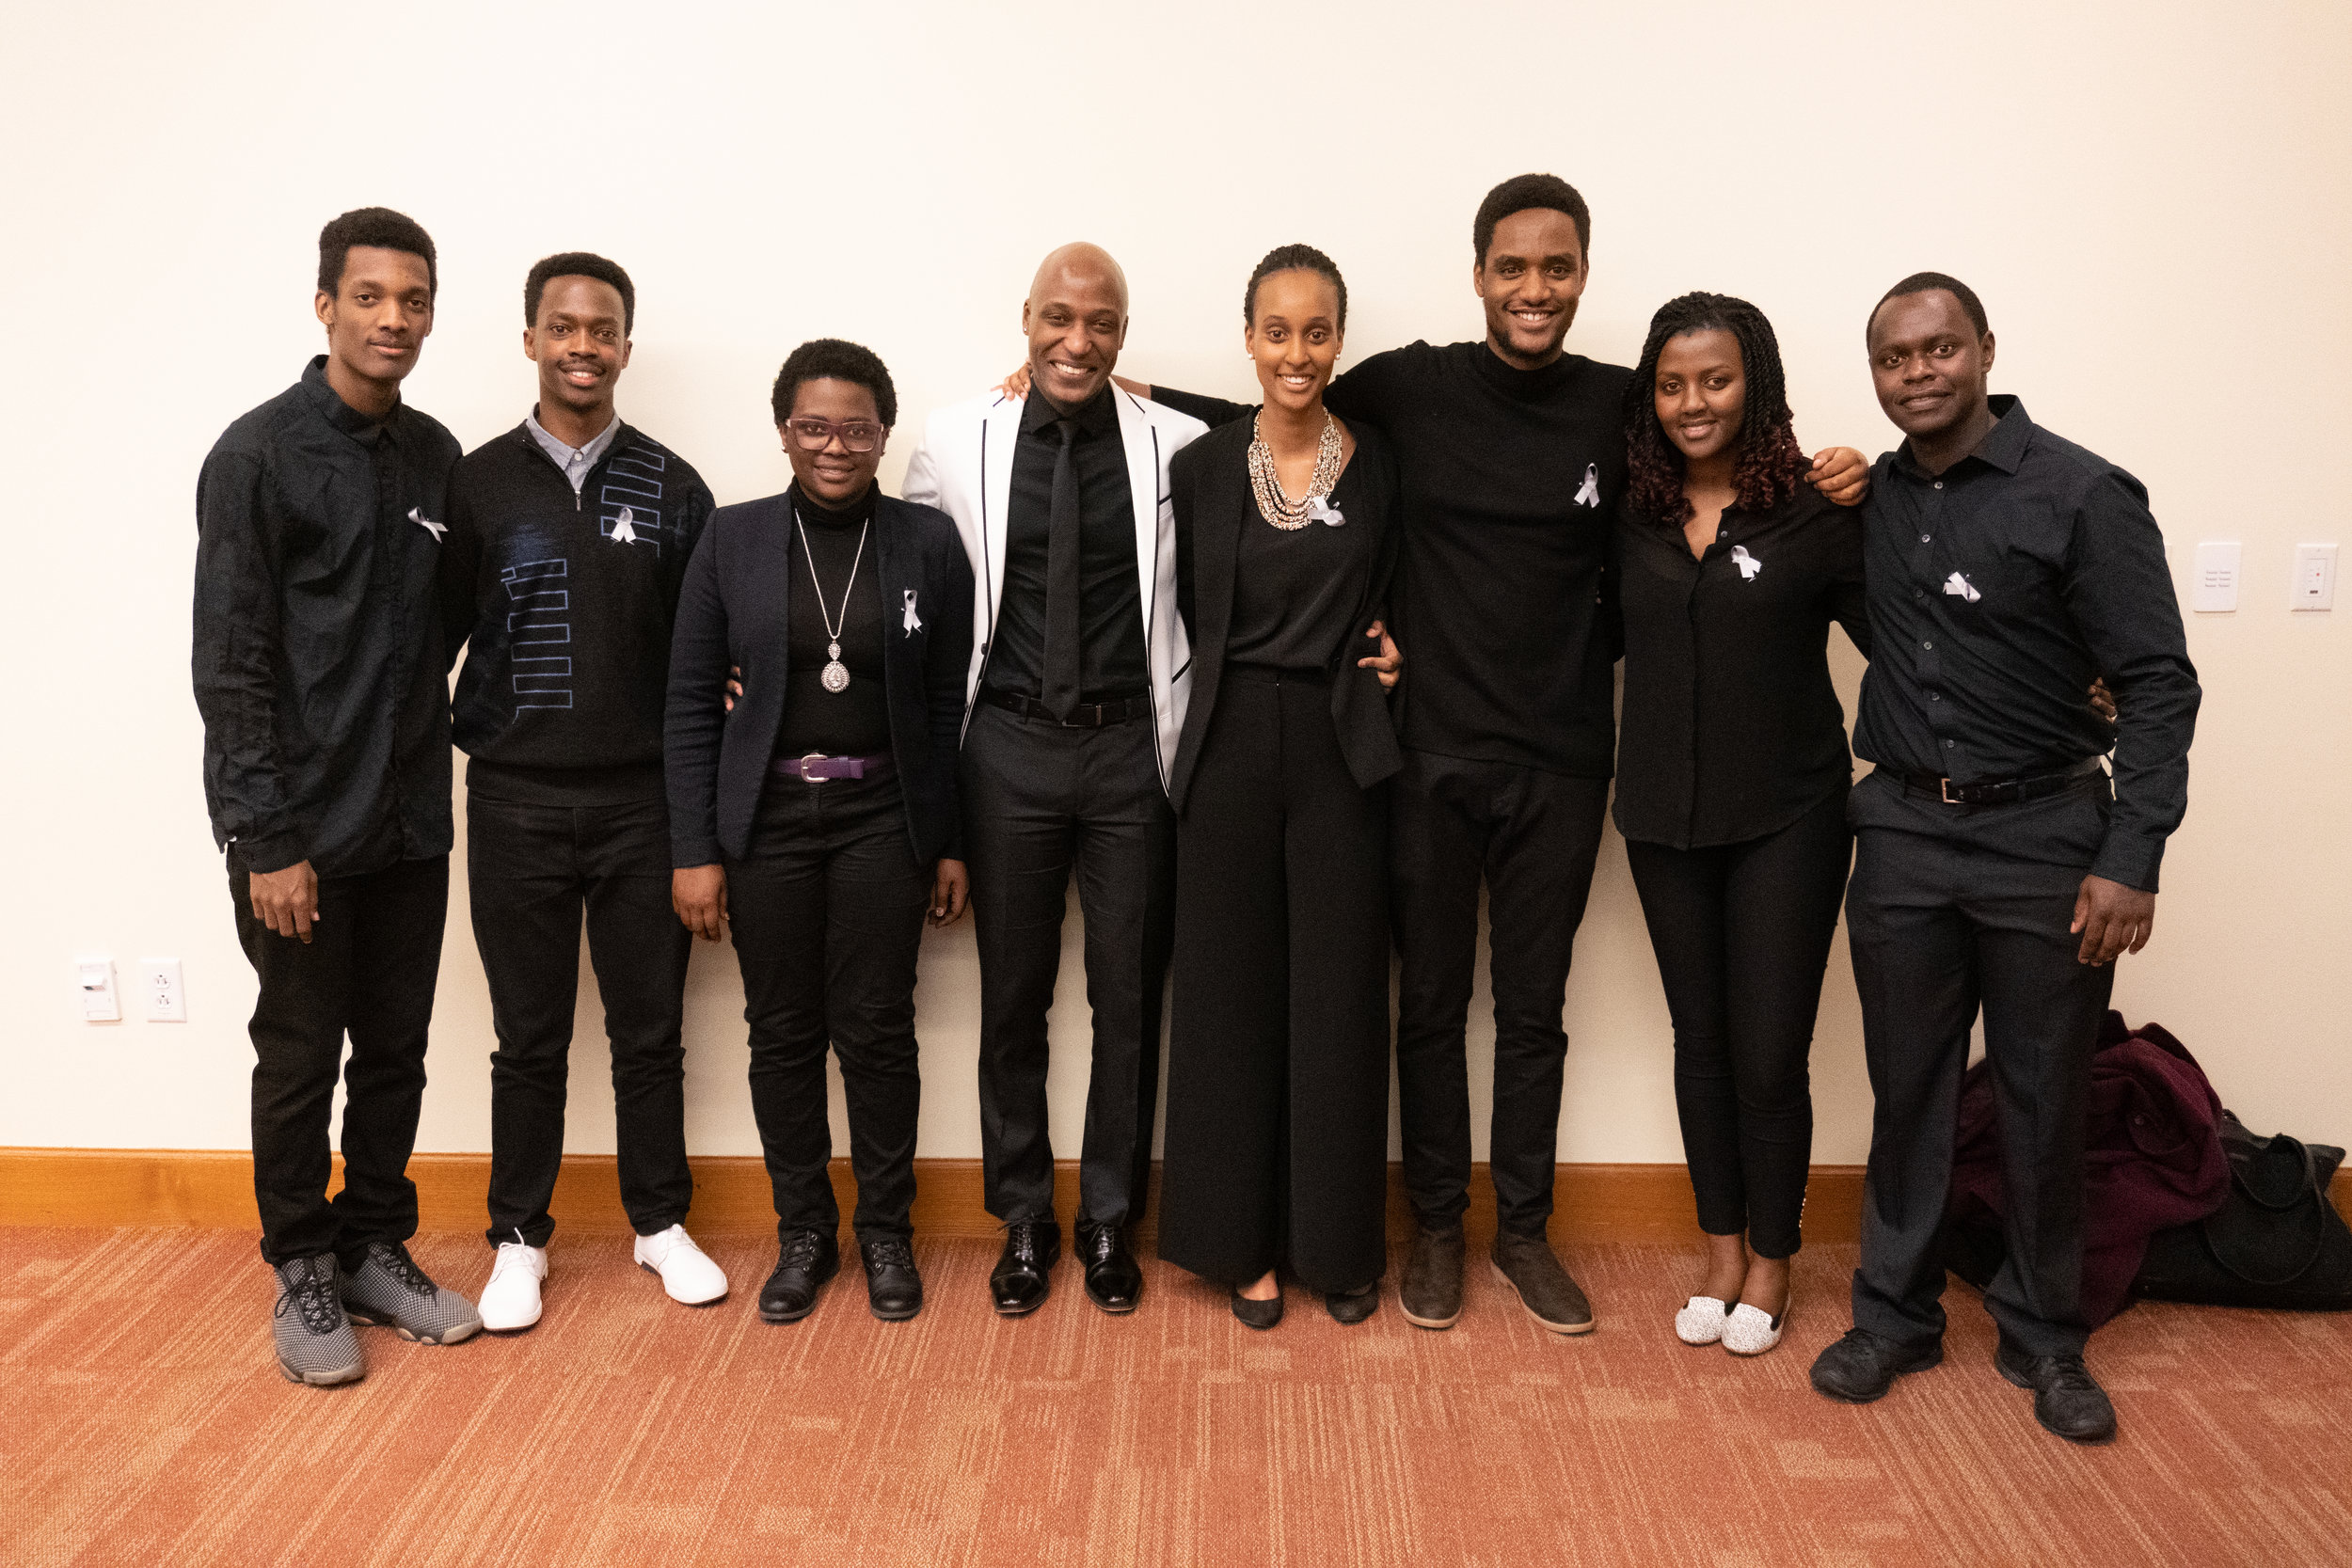 The Rwandan Students photographed with Daniel Trust, in the white coat. Photo by: Benjamin Thomas Ward